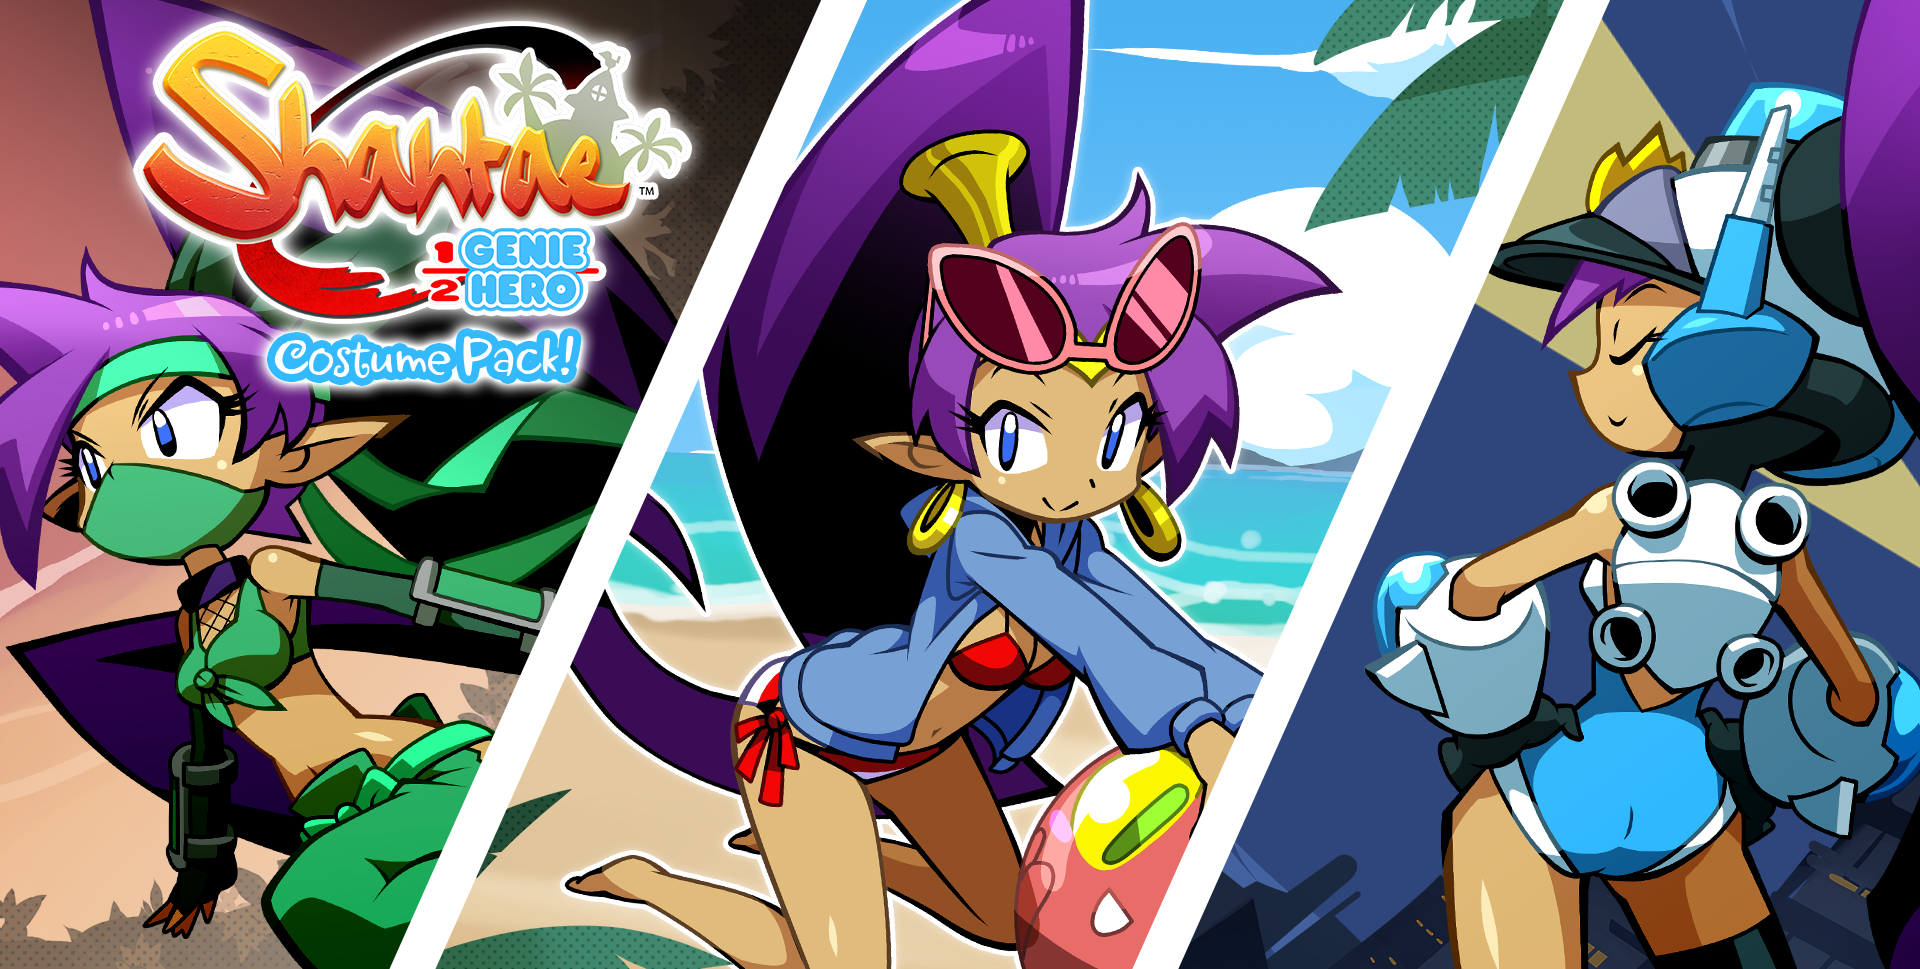 Shantae: Costume Pack